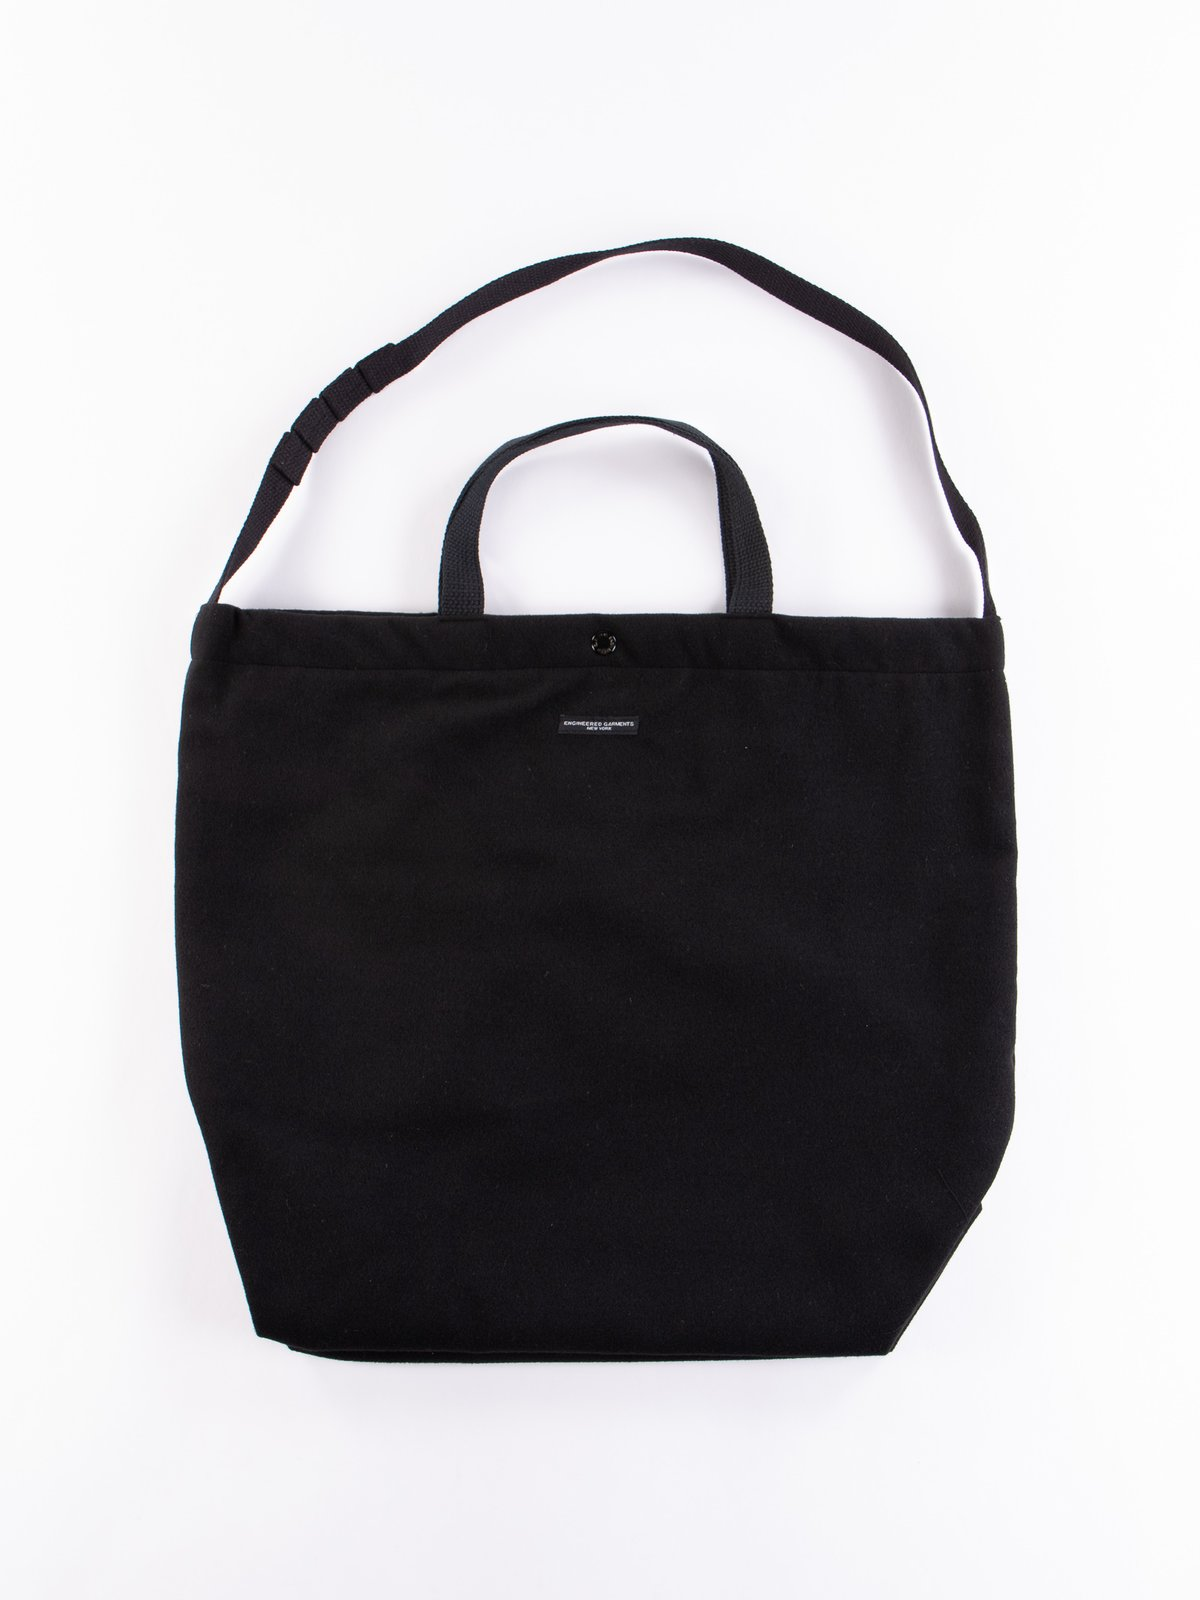 Black Polyester Fake Melton Carry All Tote - Image 1